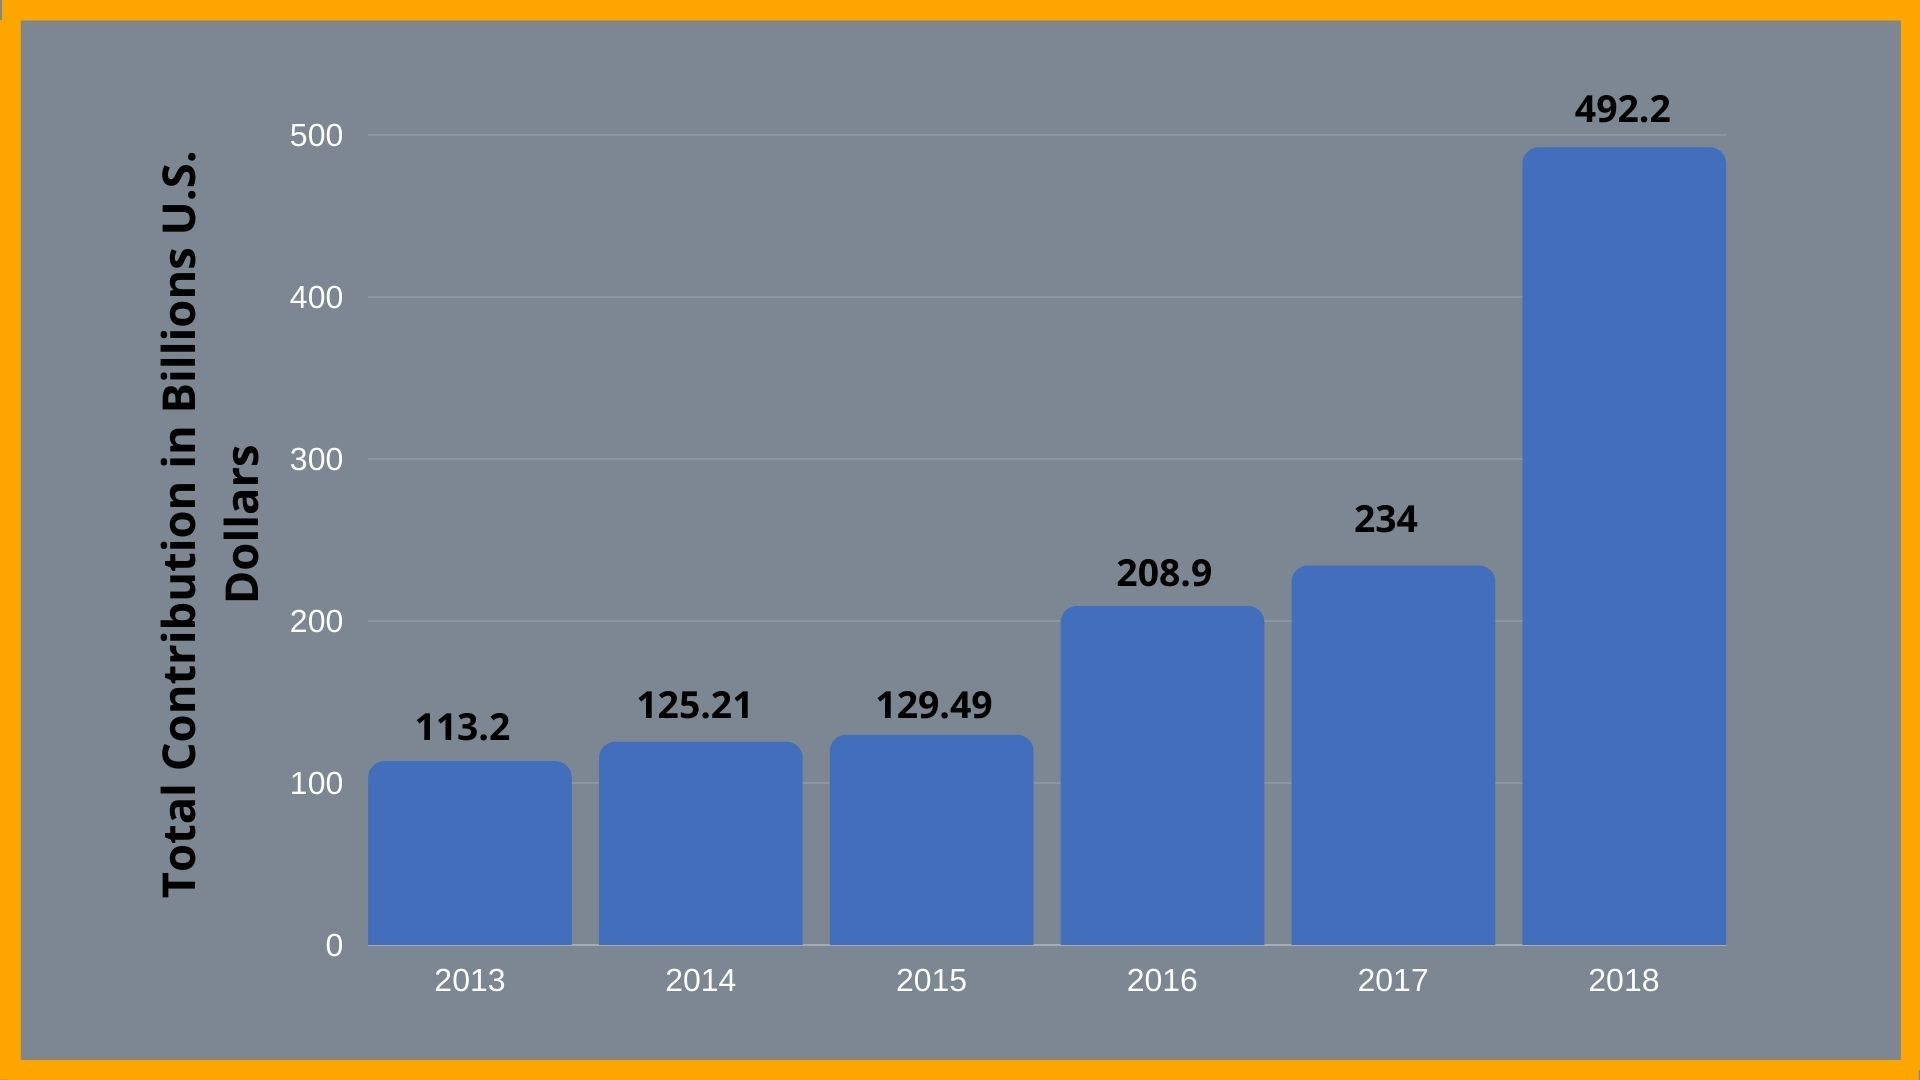 Contribution of travel and tourism to GDP in India